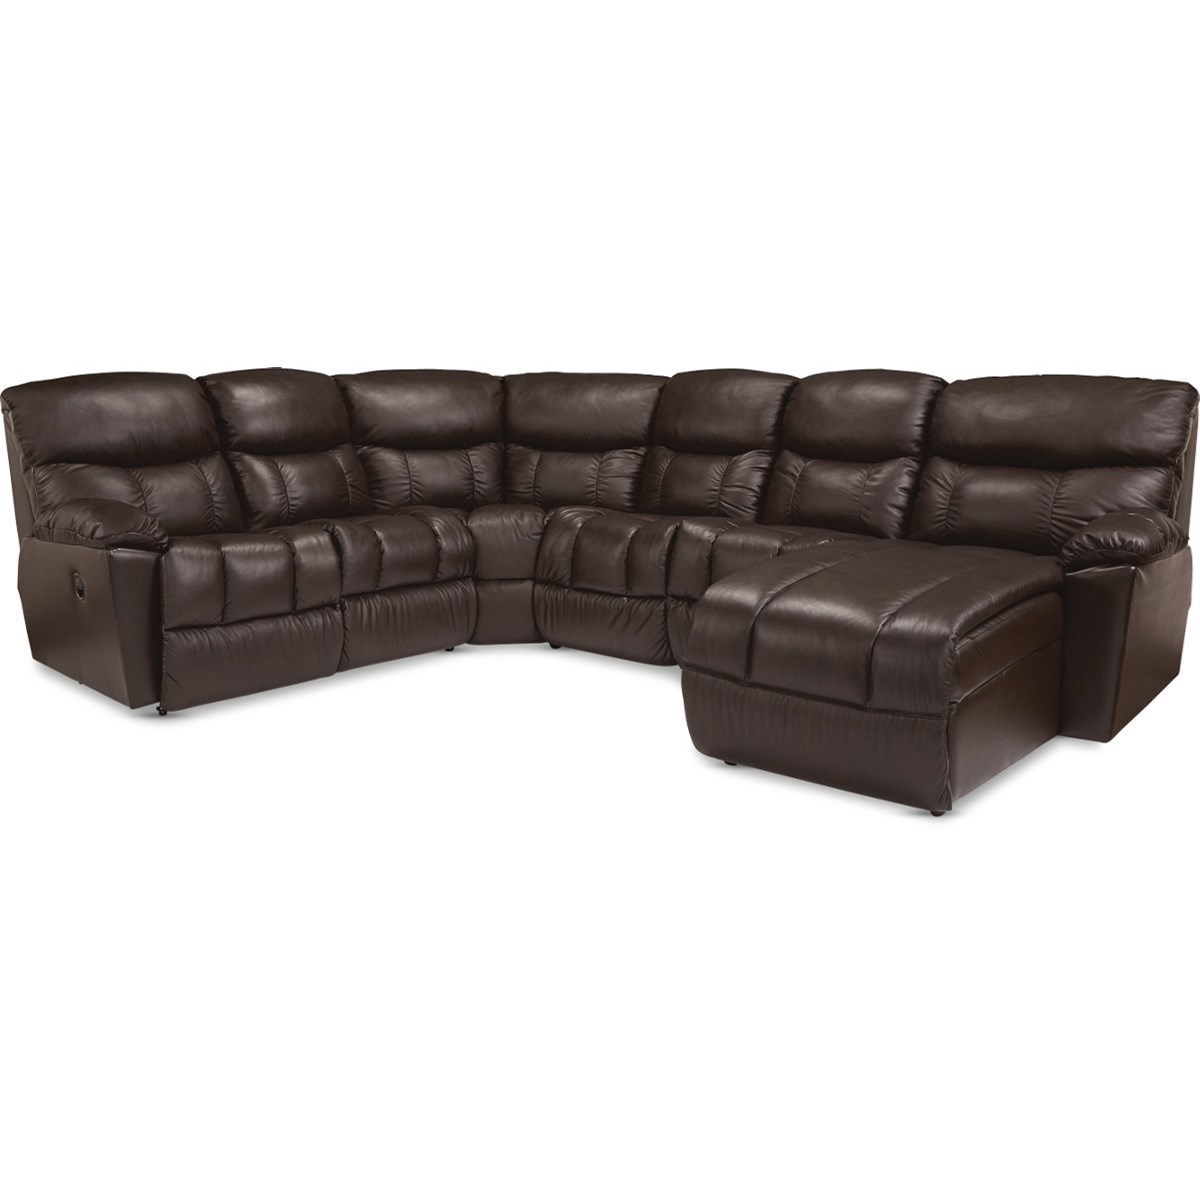 Casual 5-Seat Power Reclining Sectional Sofa with 1 Power Headrest Recliner and RAF Reclining Chaise